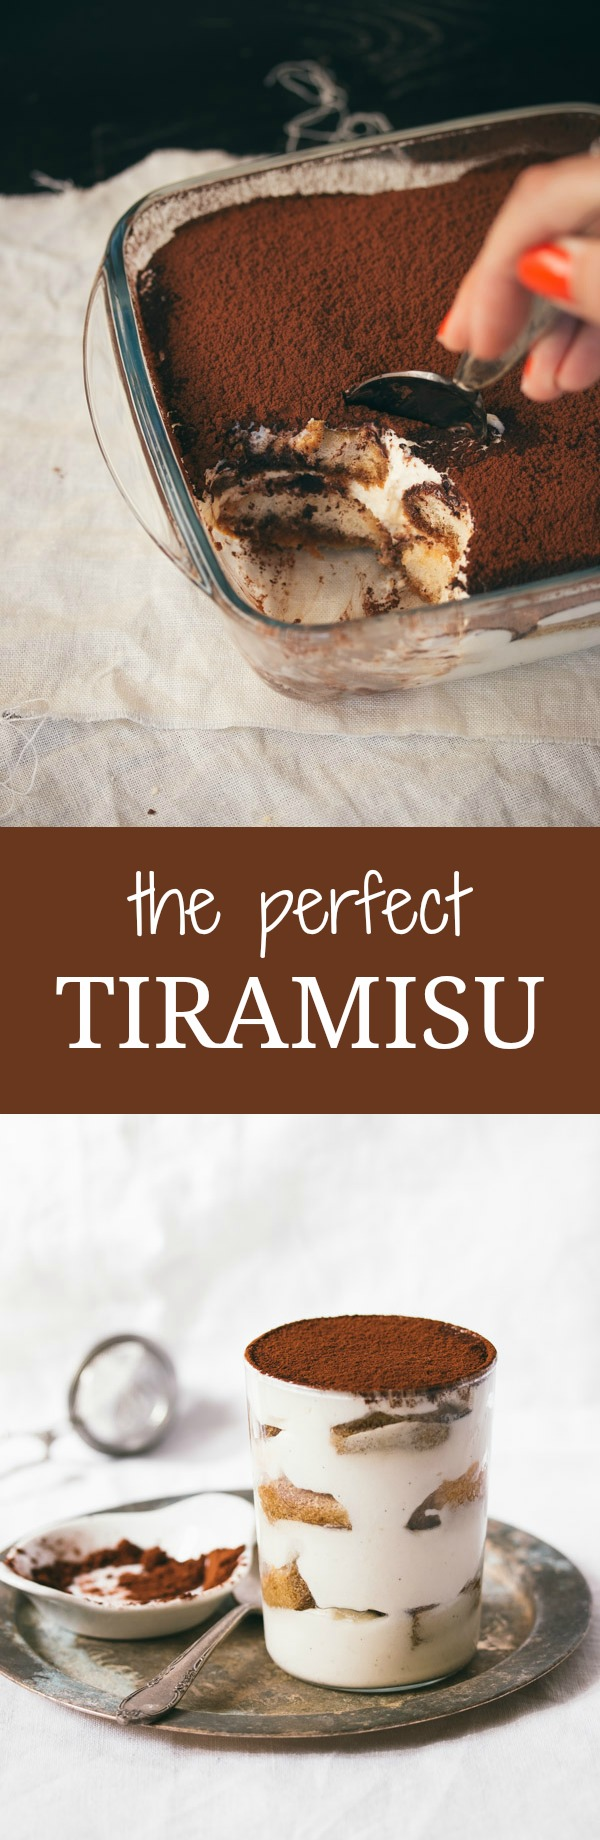 Learn how to make the best authentic tiramisu with this easy recipe and tips!